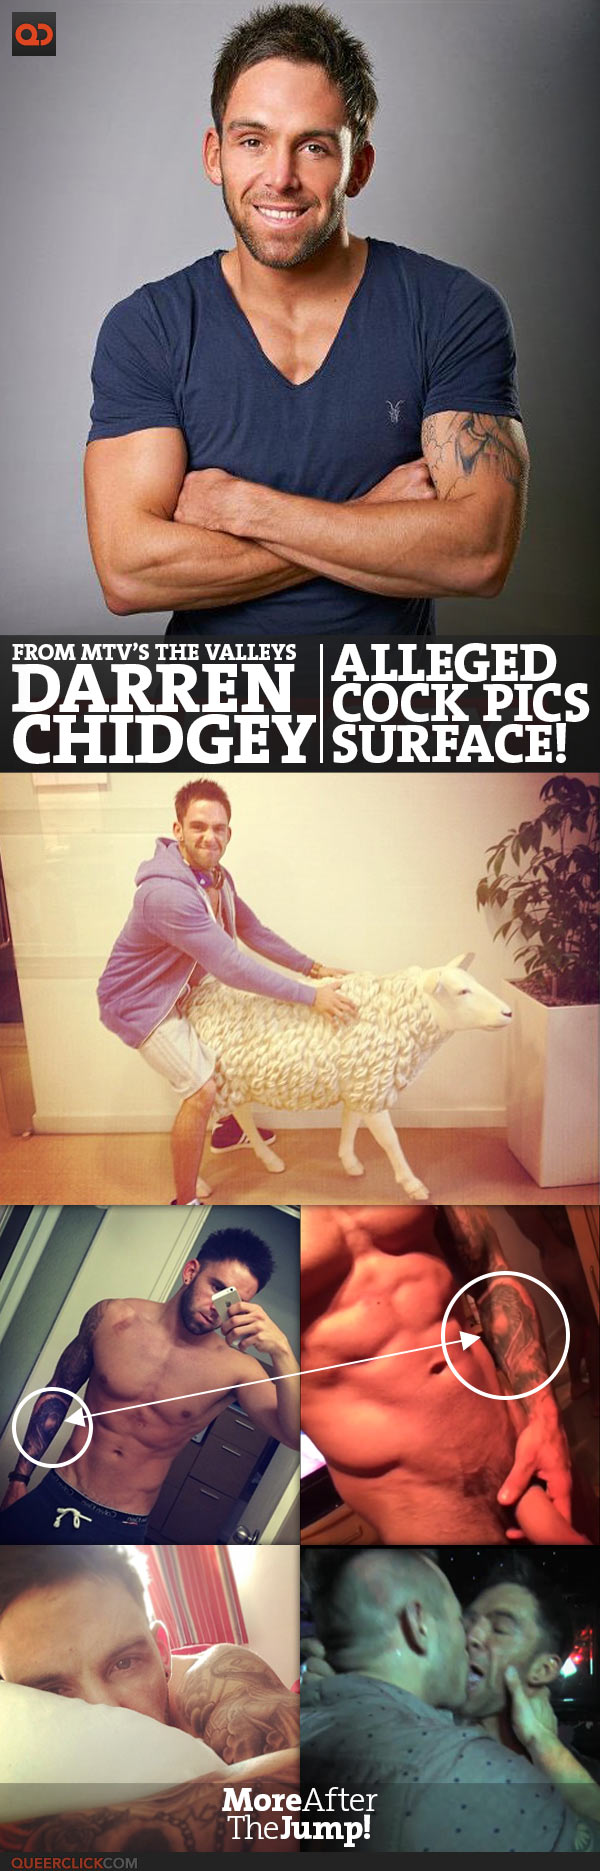 Darren Chidgey, From MTV's The Valleys, Alleged Cock Pics Surface!